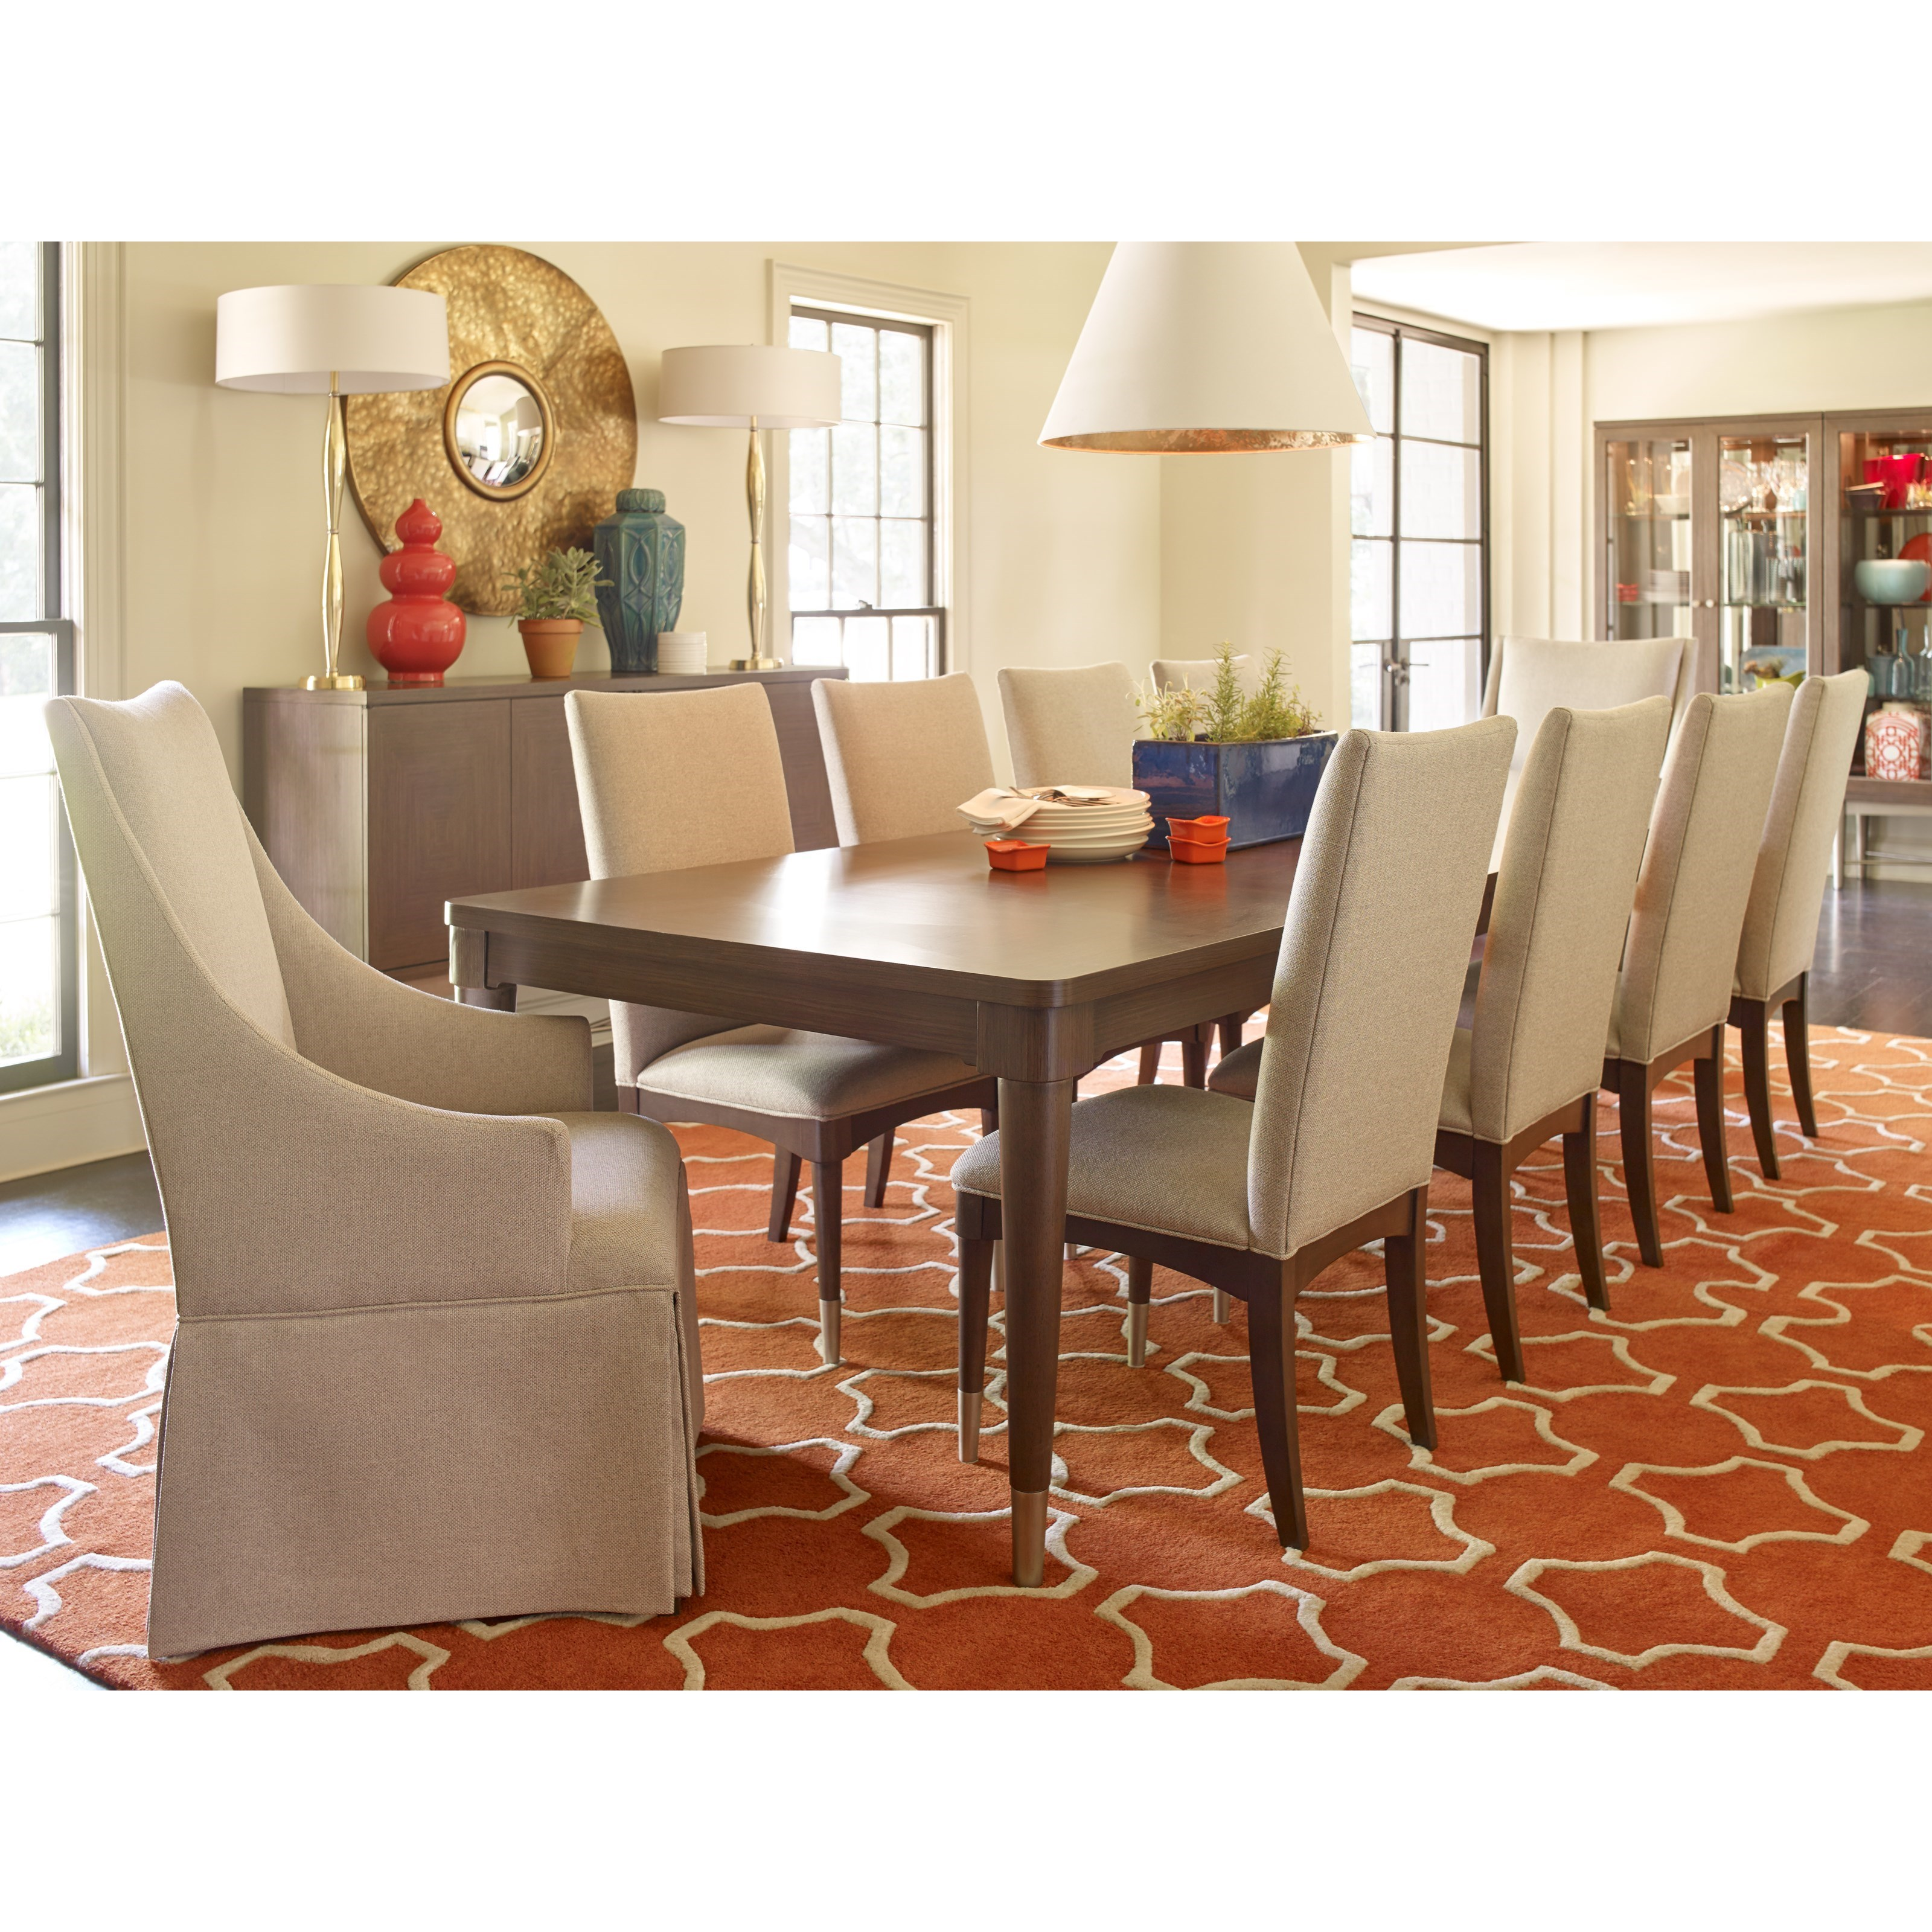 Rachael Ray Home by Legacy Classic Soho 11 Piece Dining Set - Item Number: 6020-223+2x451 KD+8x140 KD